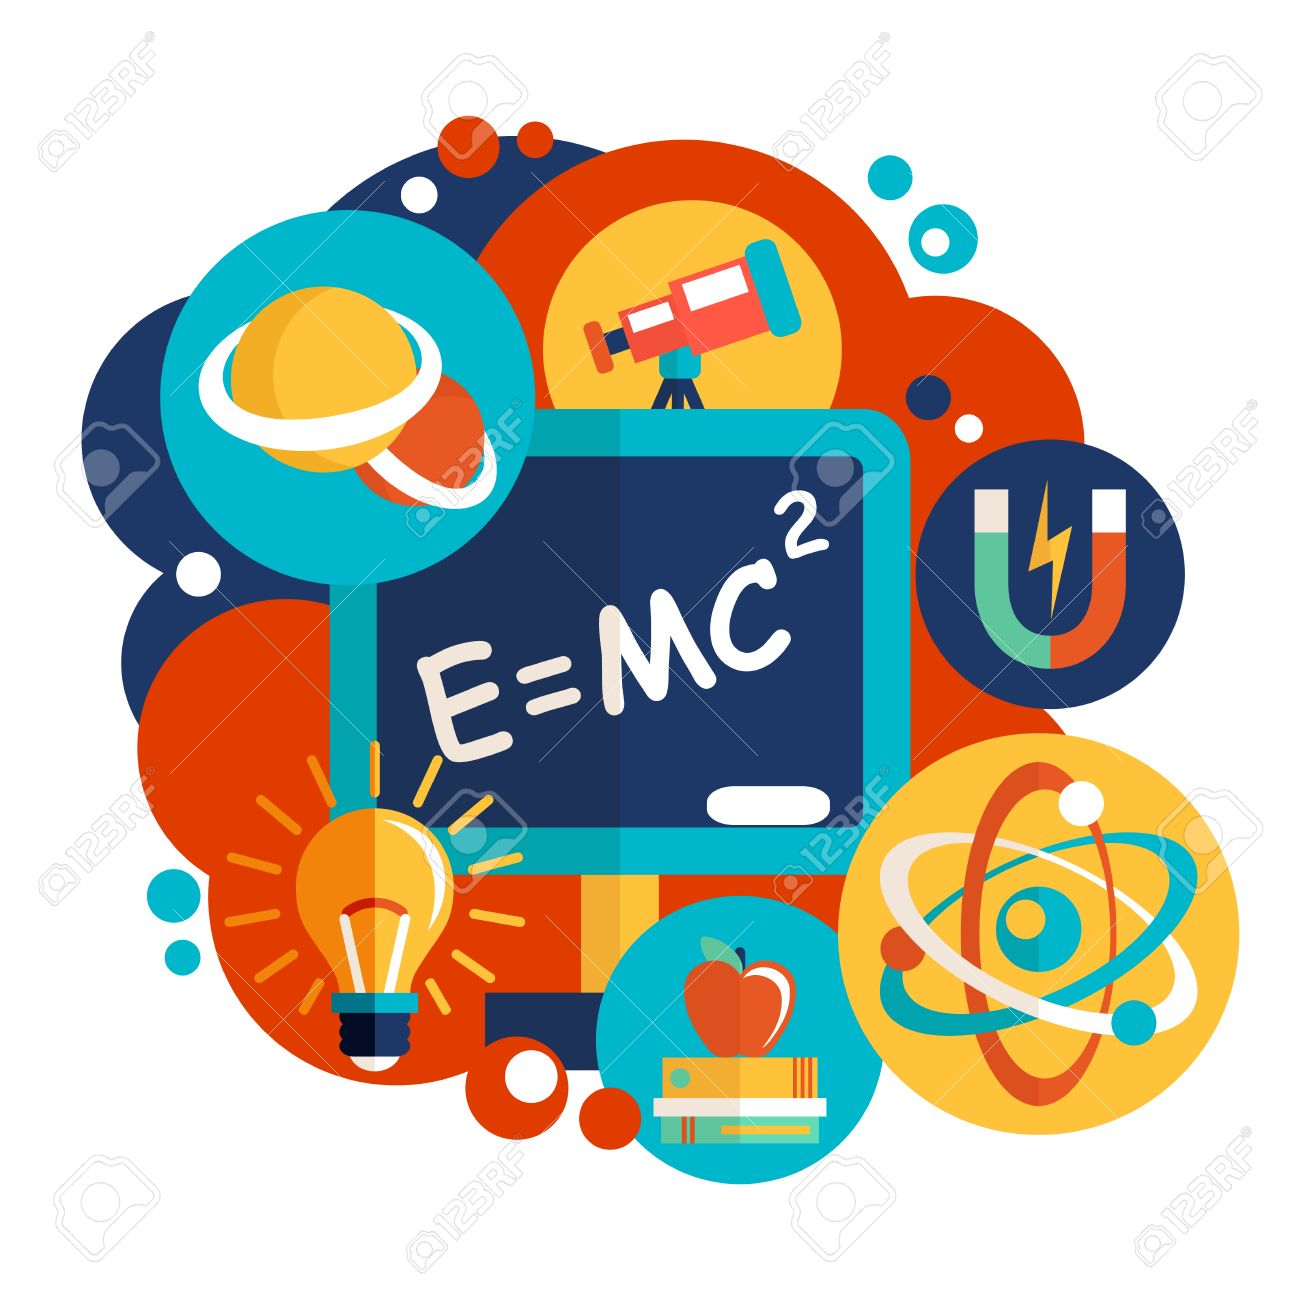 Physics science flat design clipart station for Physics planning and design experiments